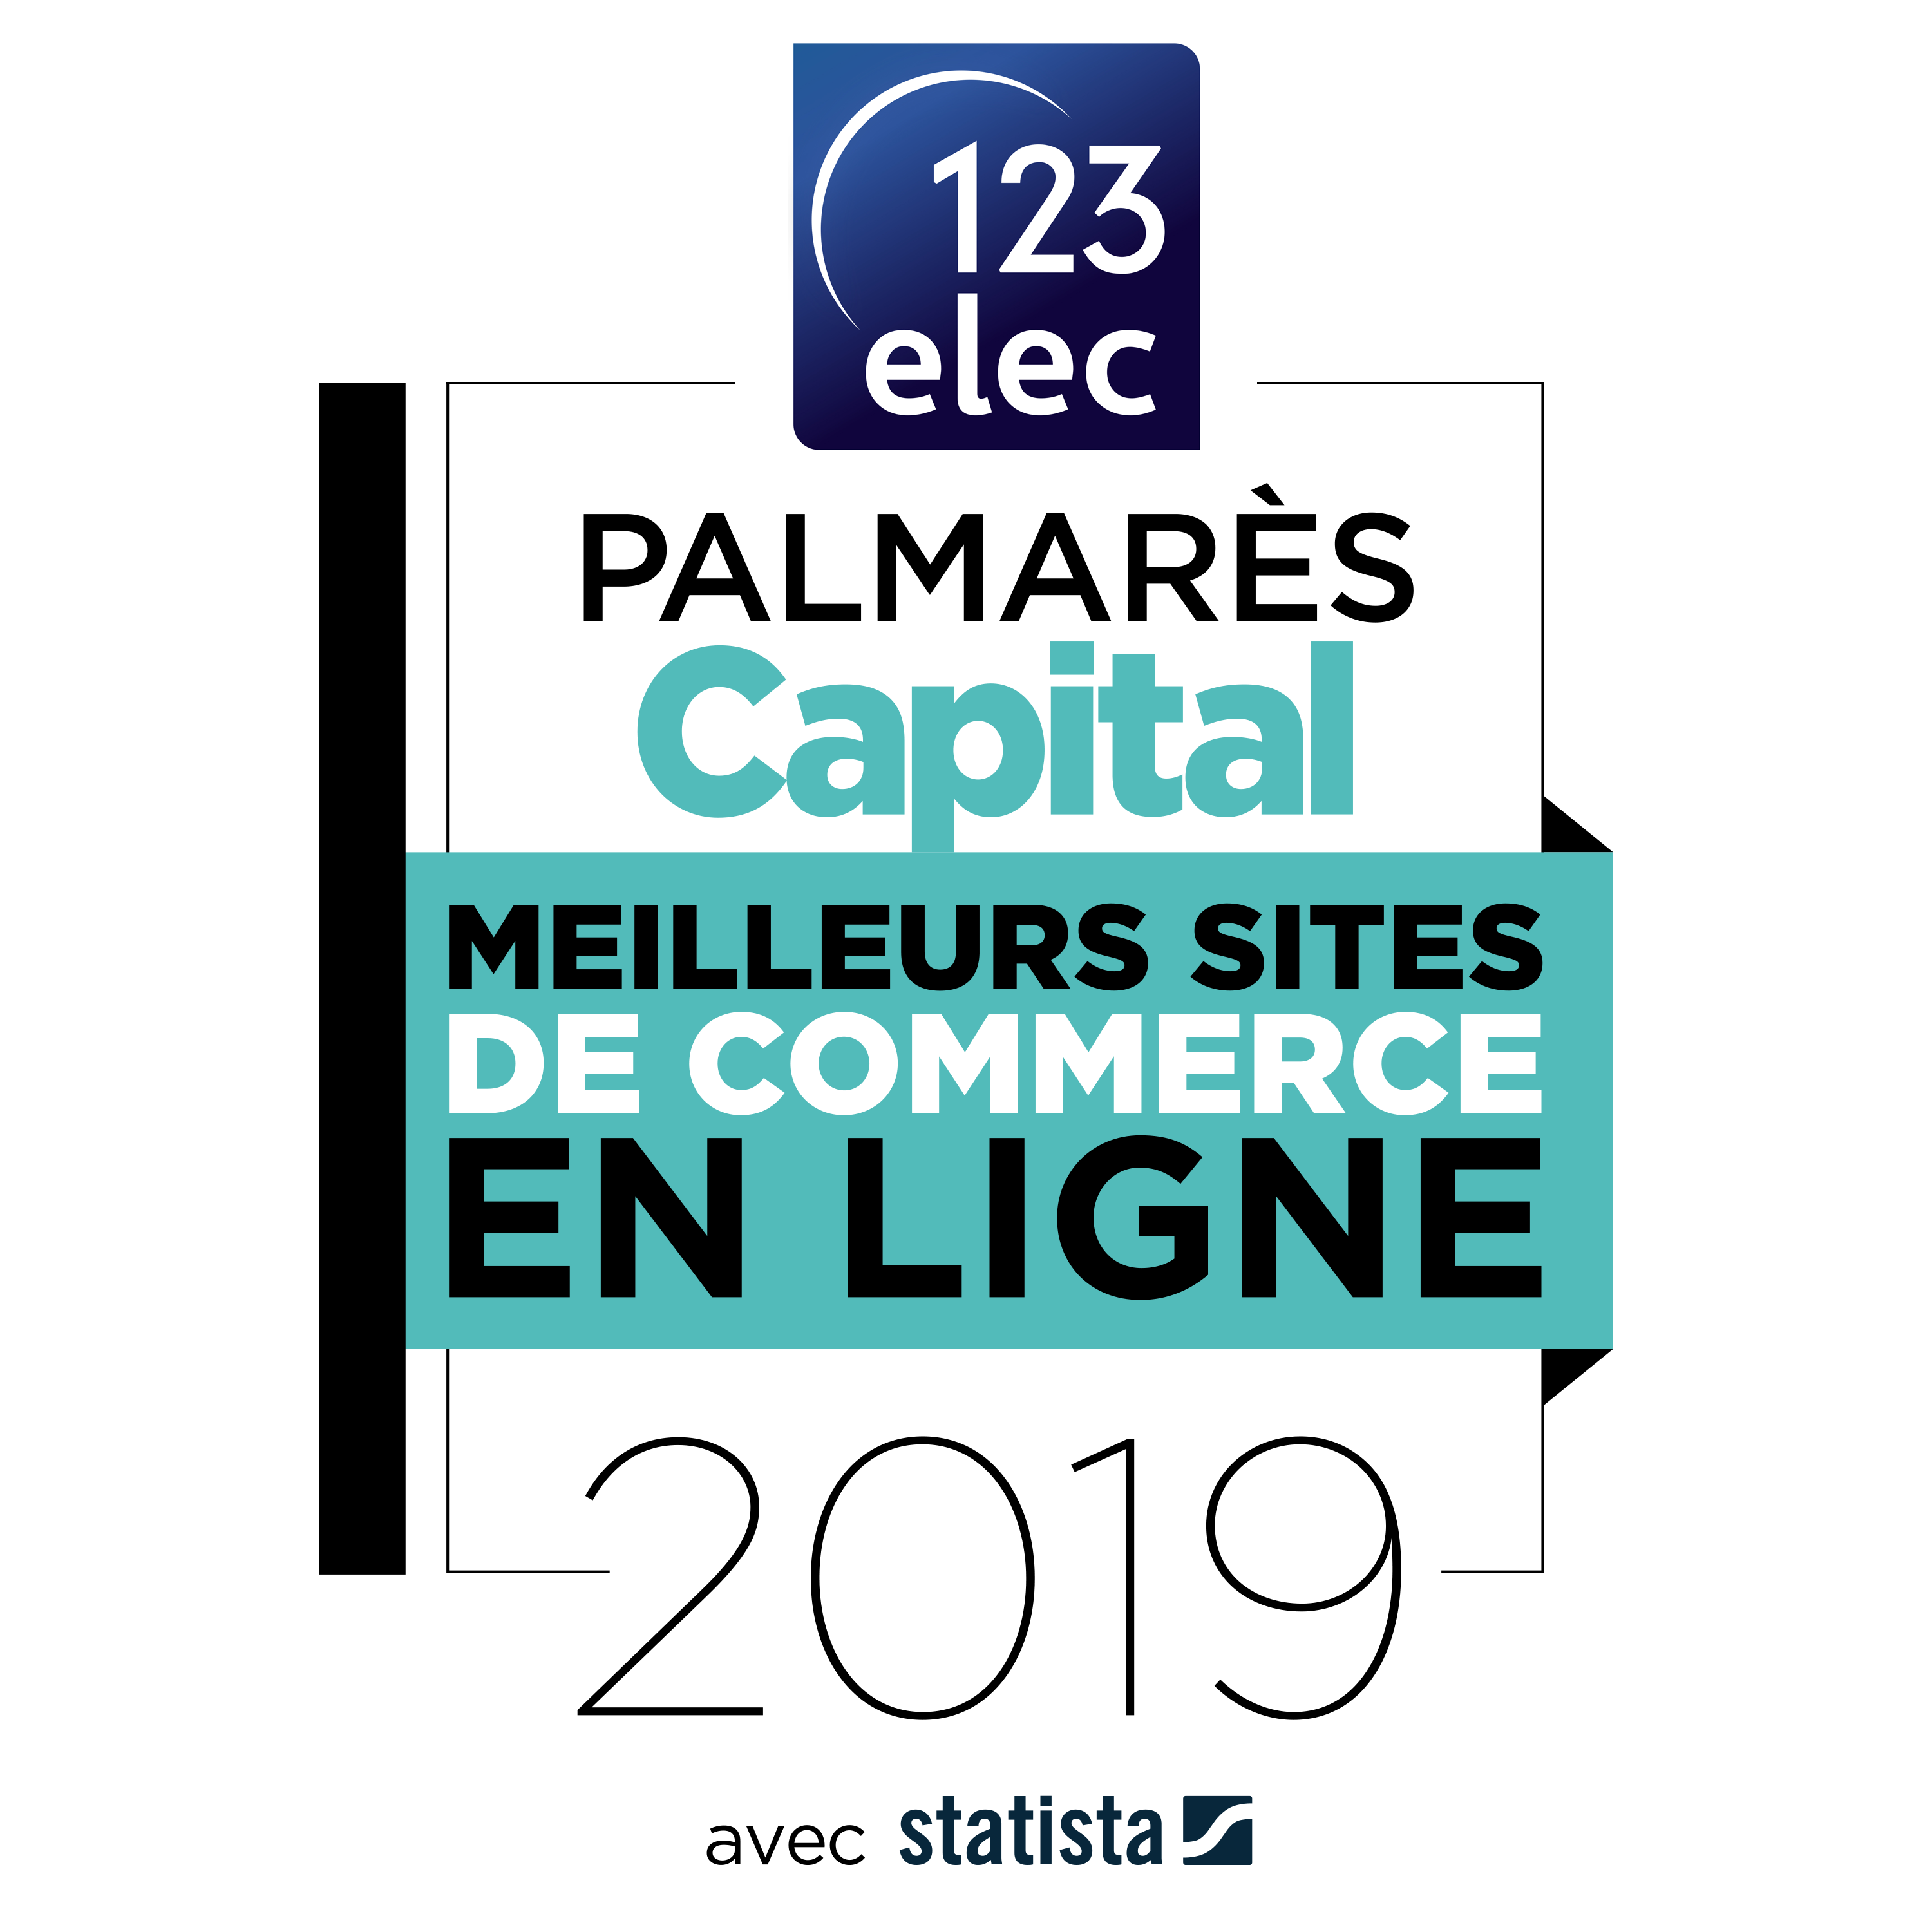 123elec, meilleur site e-commerce 2019 par Capital